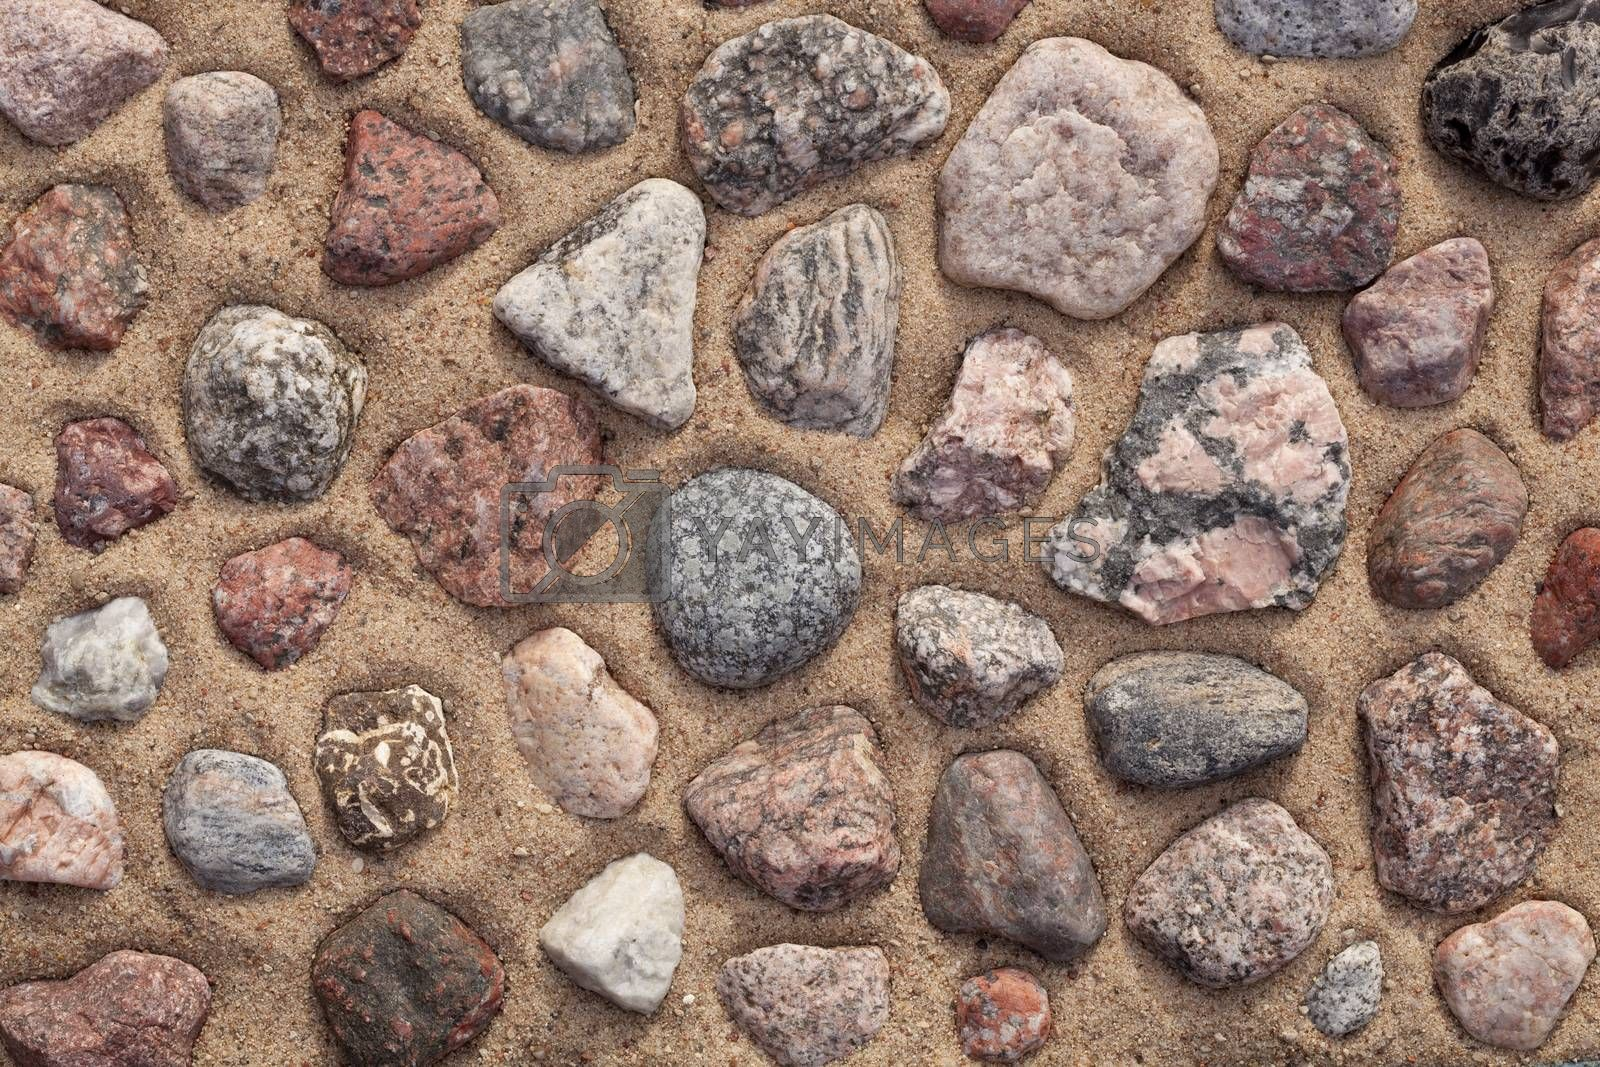 dry colourful stones arranged on sand as background